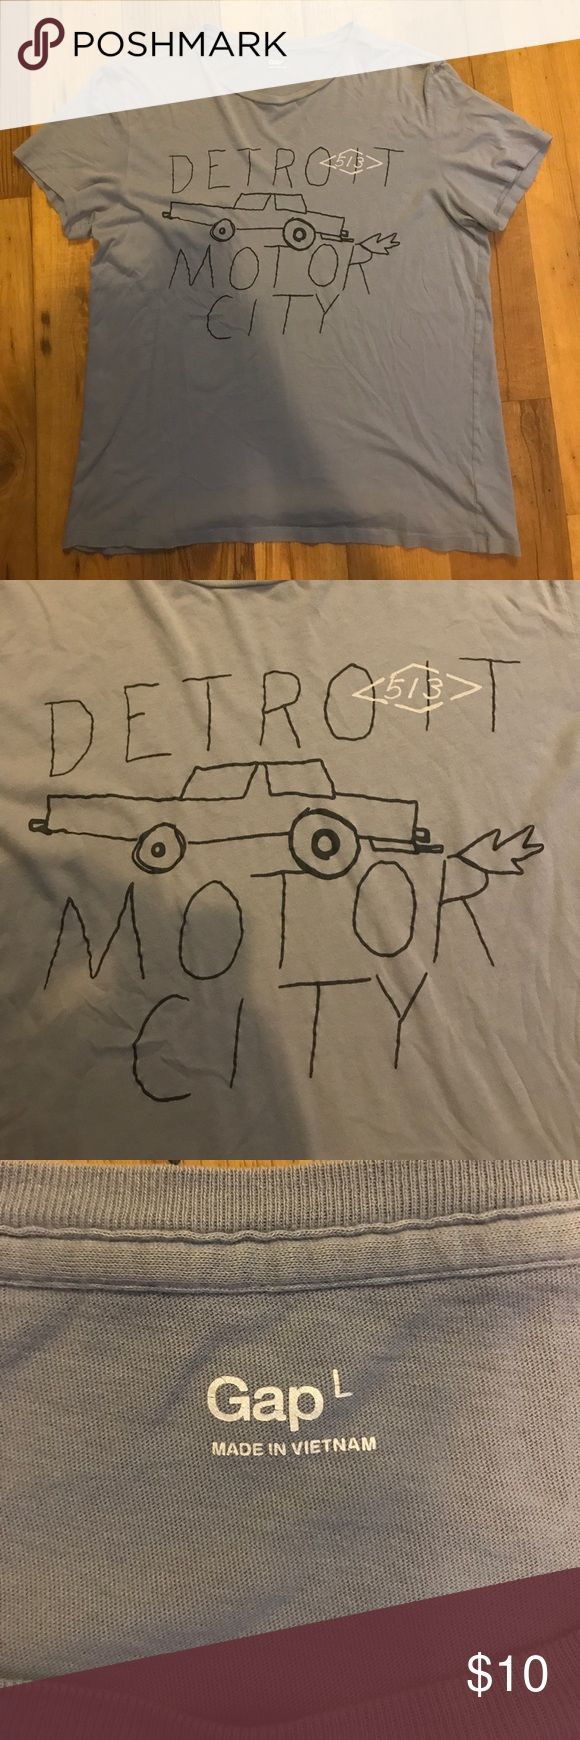 Detroit Motor City Tee Light blue/gray Detroit Motor City T shirt. Super comfy soft material. GAP Shirts Tees - Short Sleeve